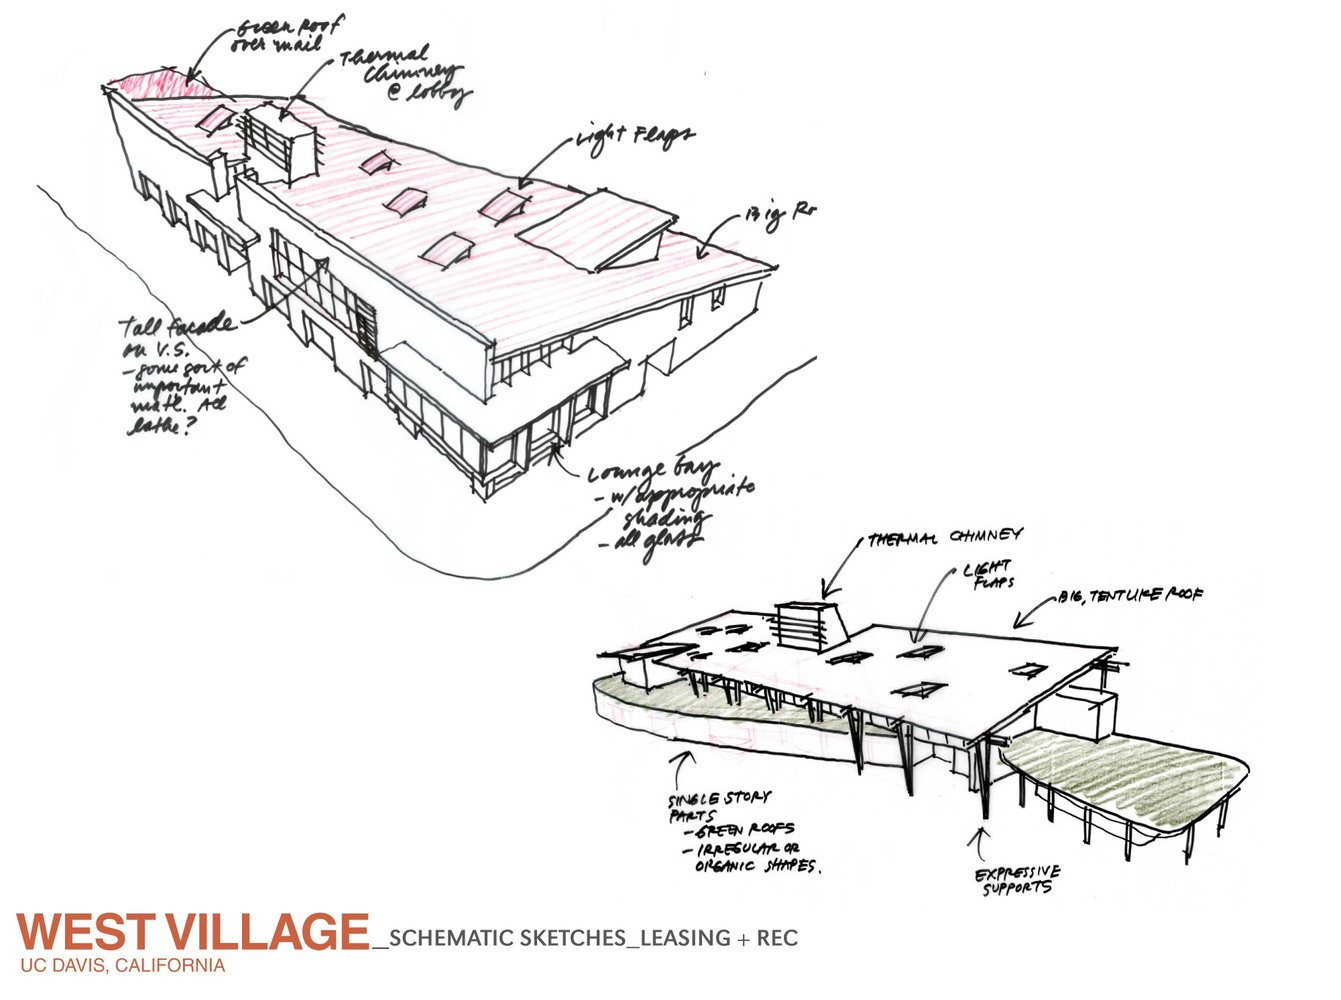 uc davis west village / studio e architects  diagrams 02